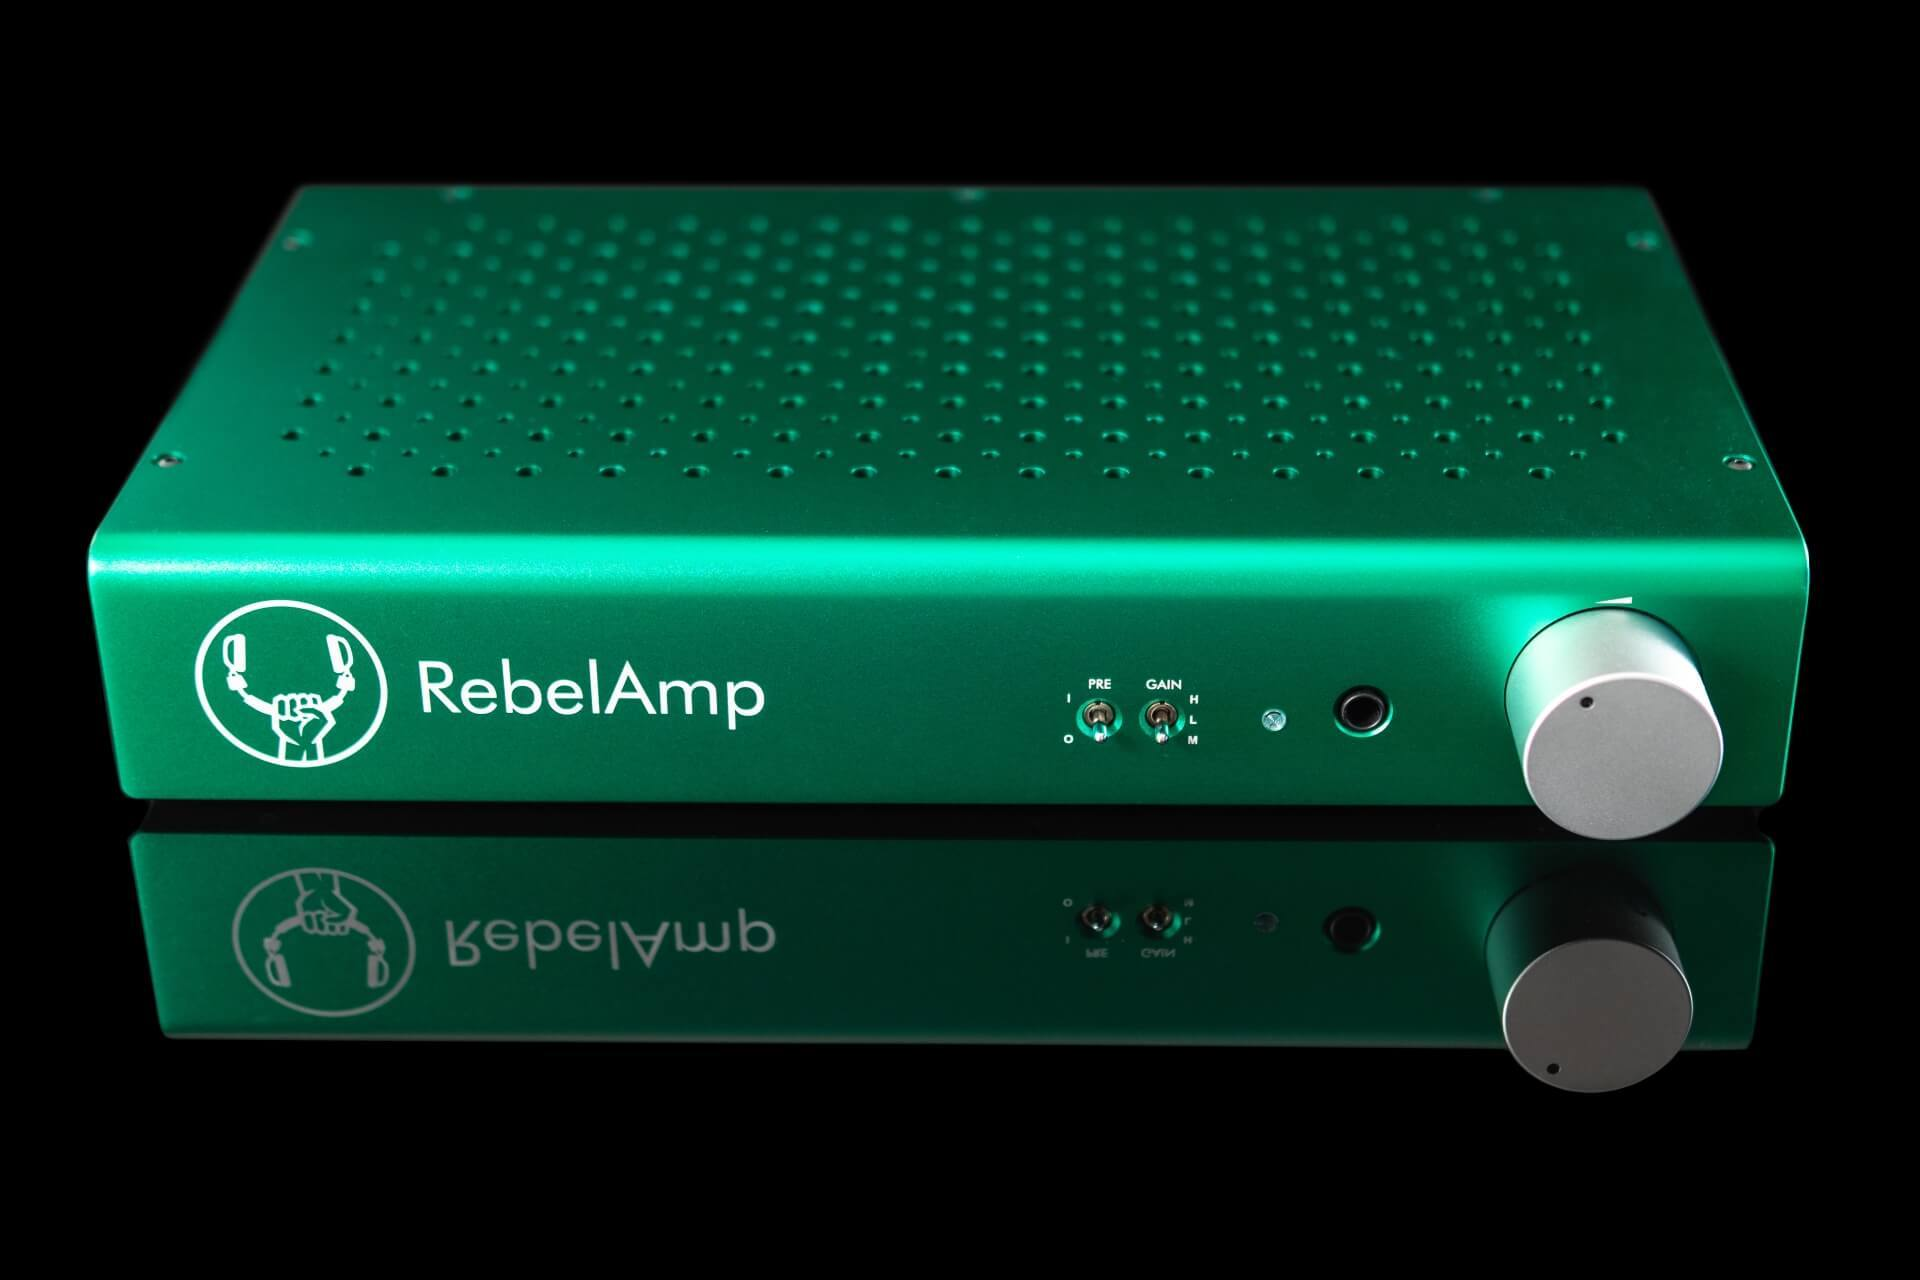 rebelamp-front_1920x